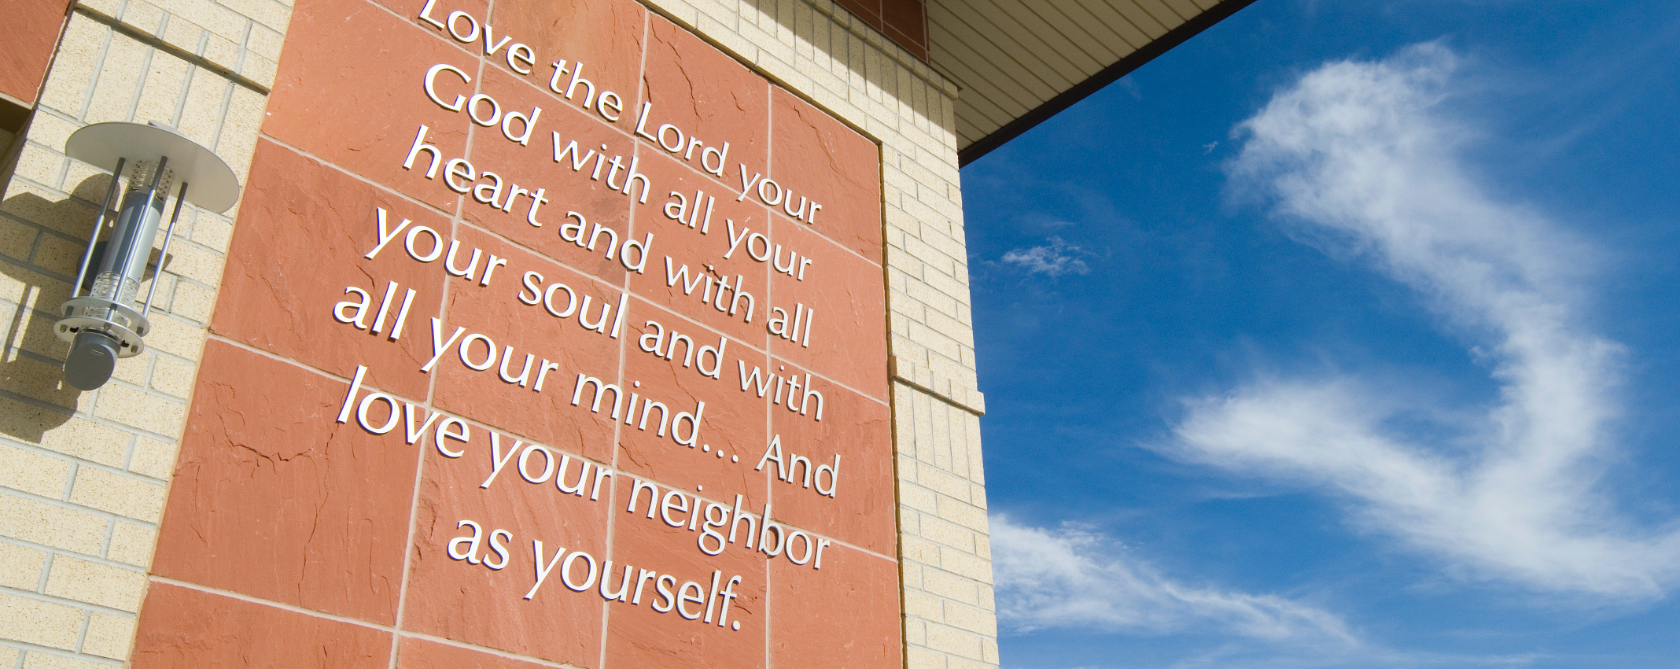 love the lord your god with all your heart and with all your soul and with all your mind.... and love your neighbor as yourself.